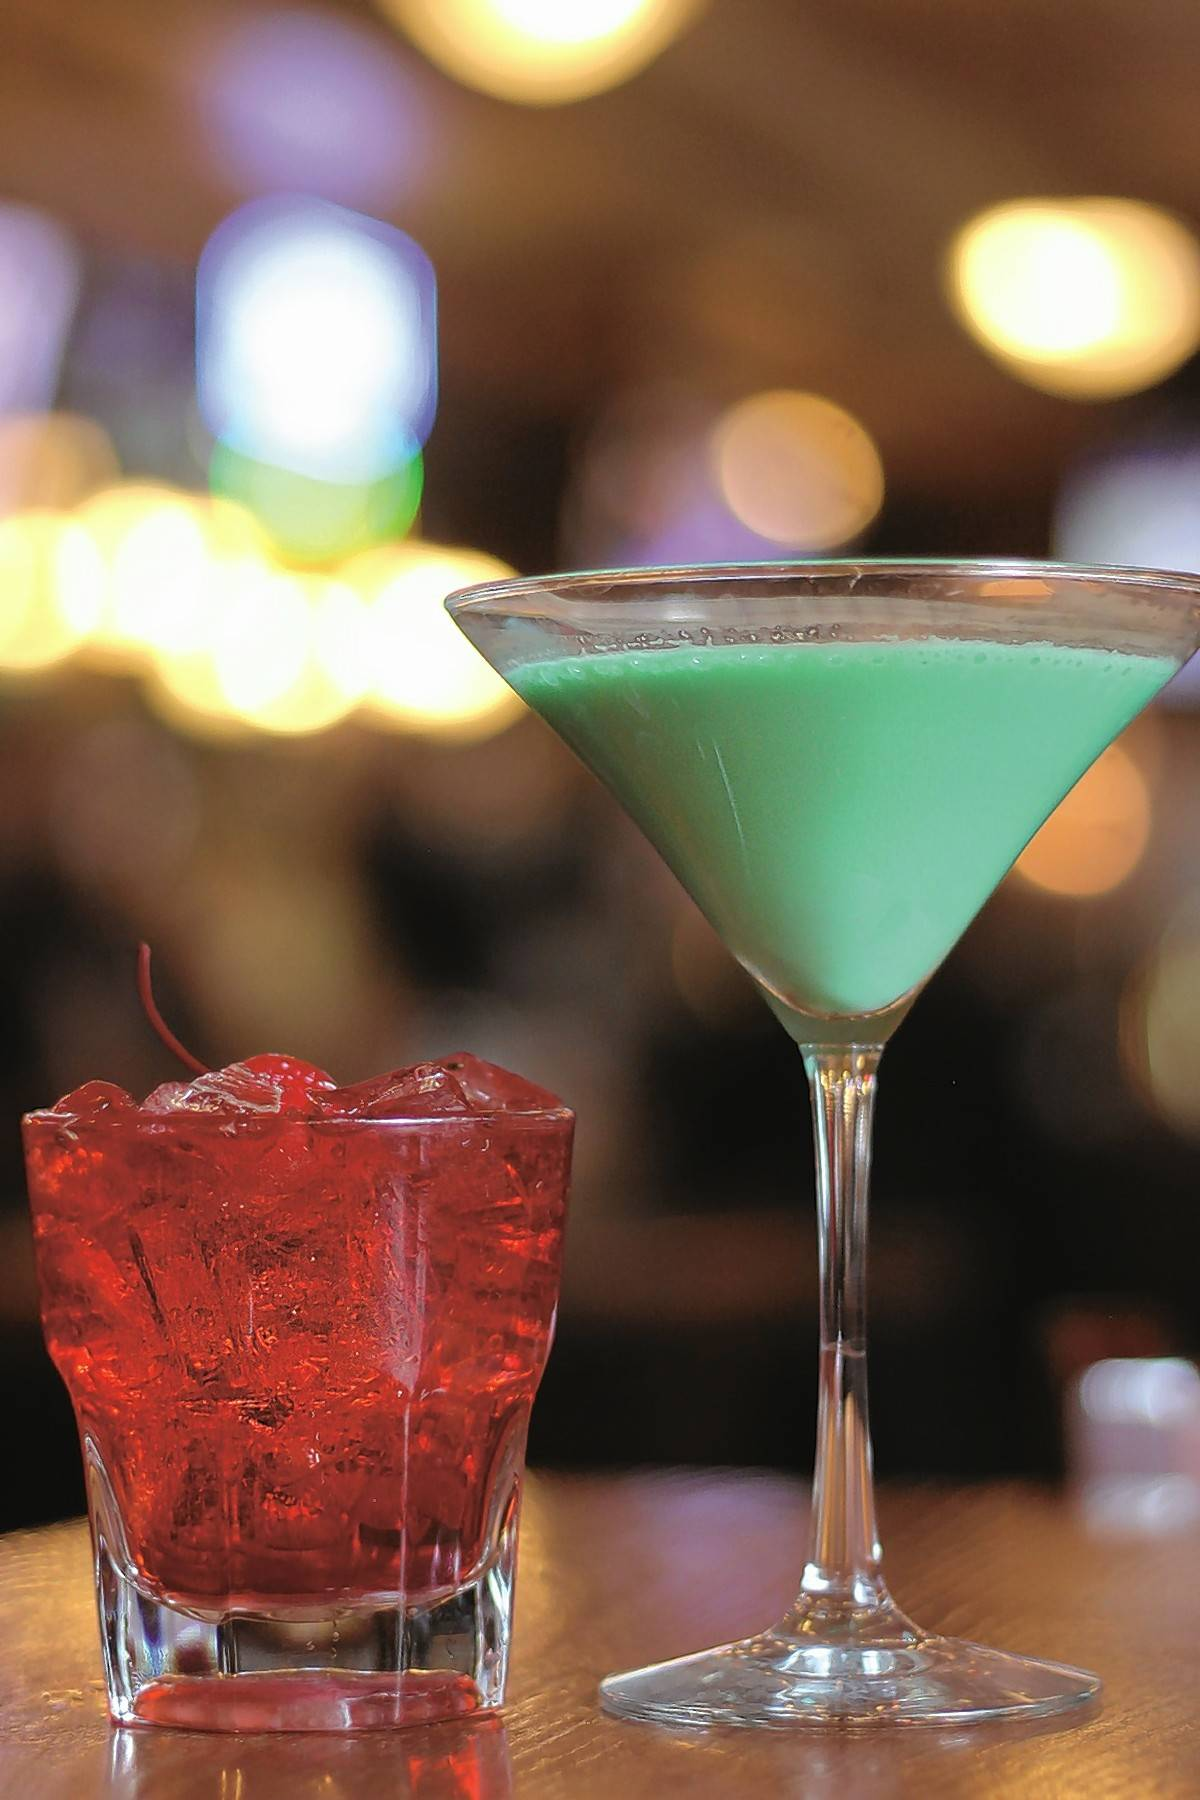 Start off your Valentine's meal with the Swipe Left chambord Manhattan or the Swipe Right chocolate mint martini at Harry Caray's.